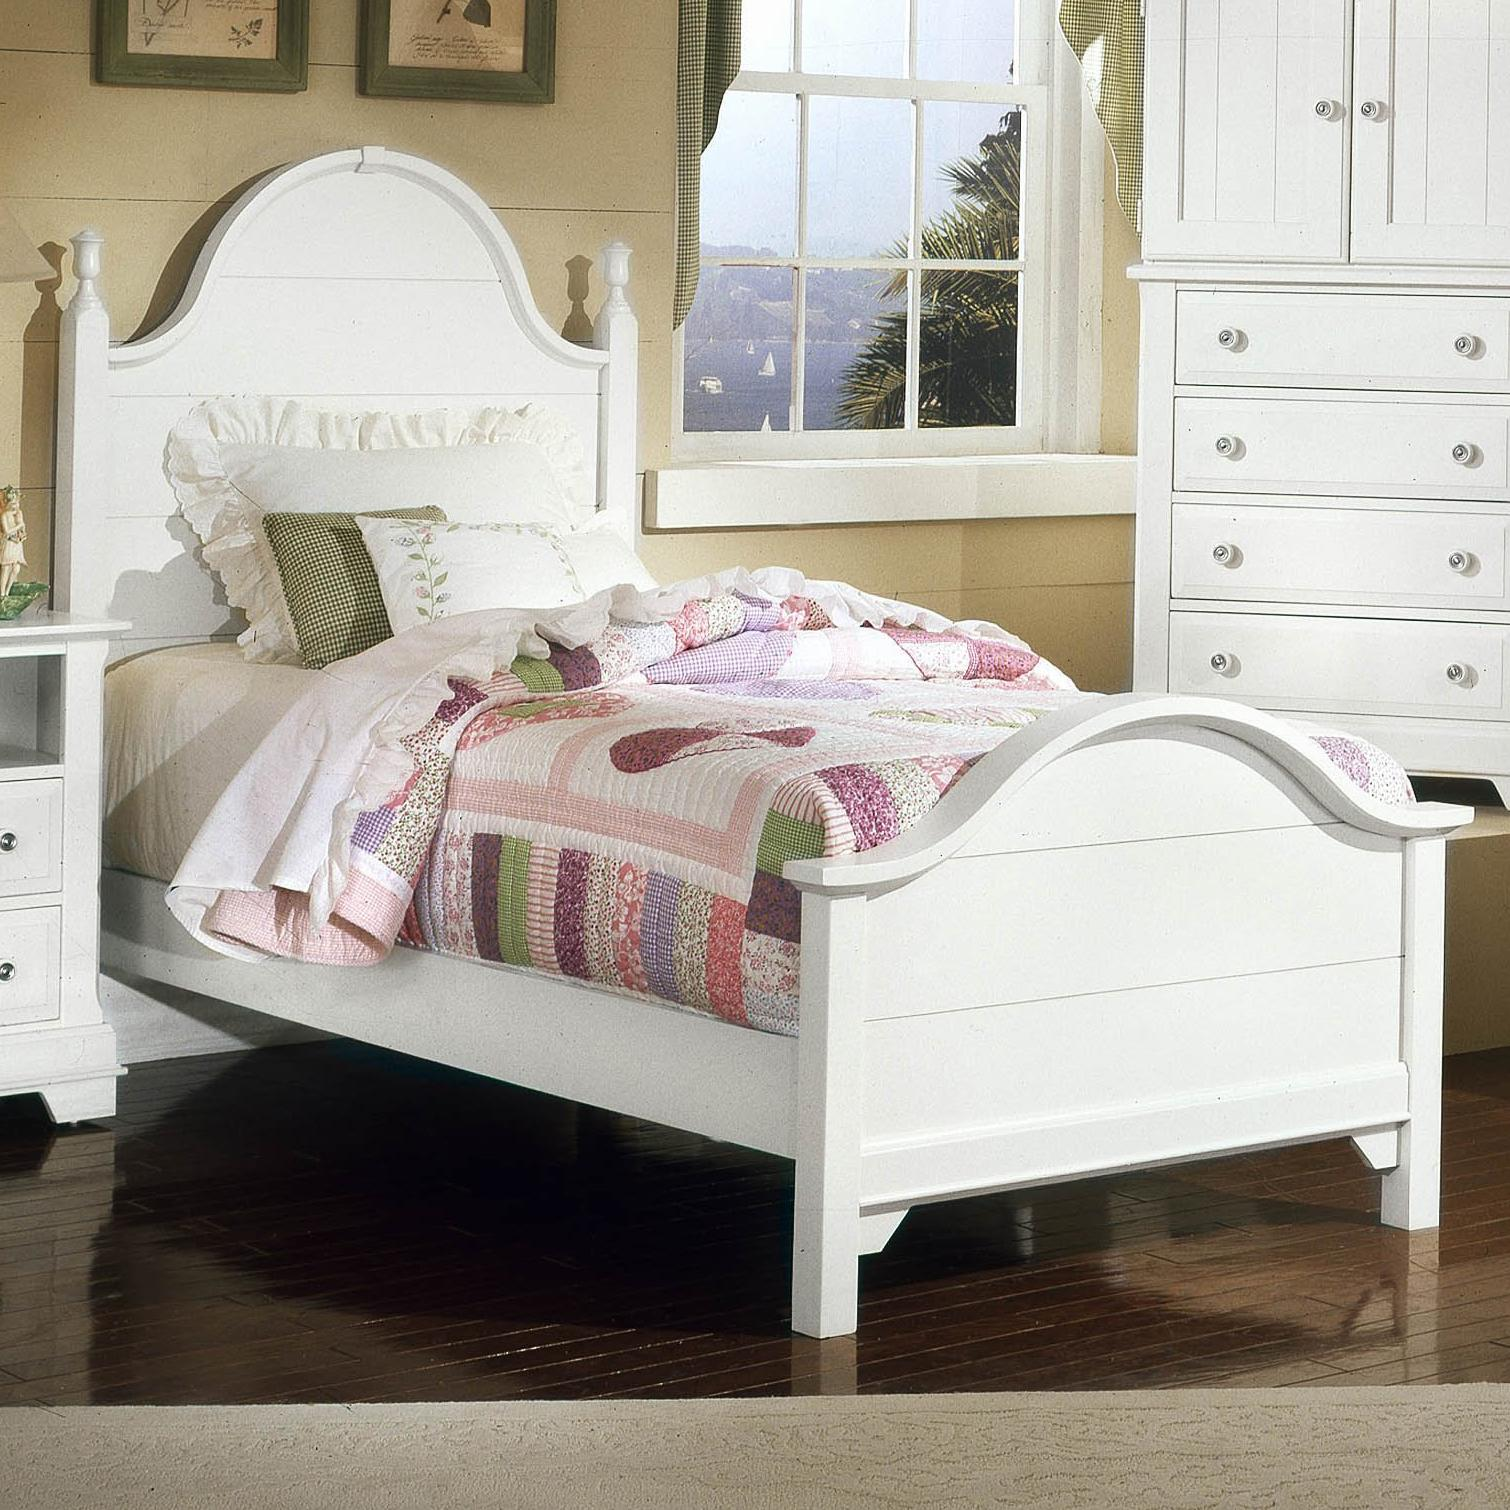 Vaughan bassett cottage twin panel bed johnny janosik for Panel bed mattress